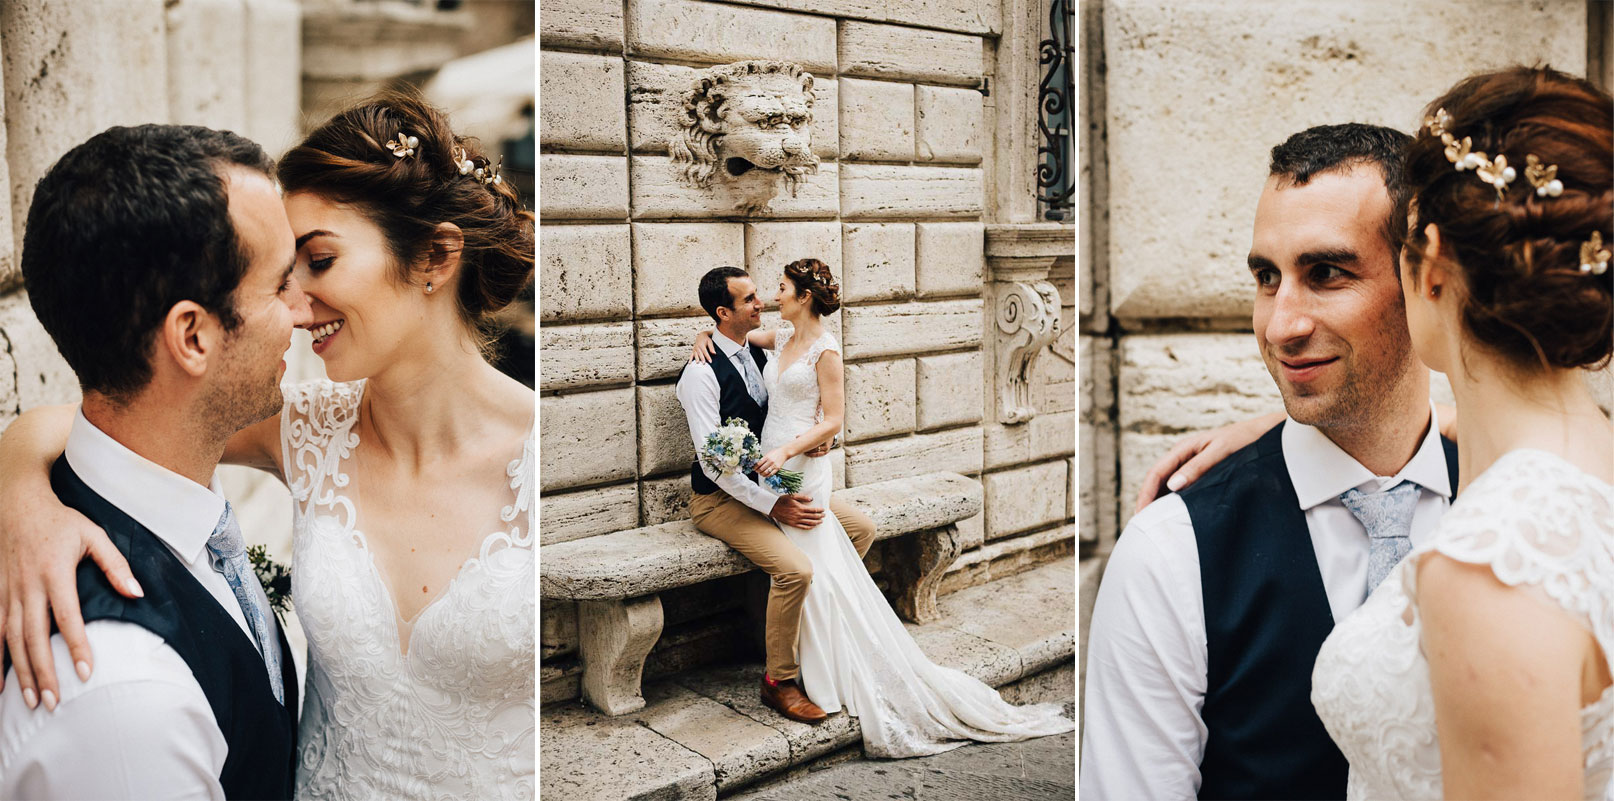 pienza-tuscany-wedding-photographer-86.jpg